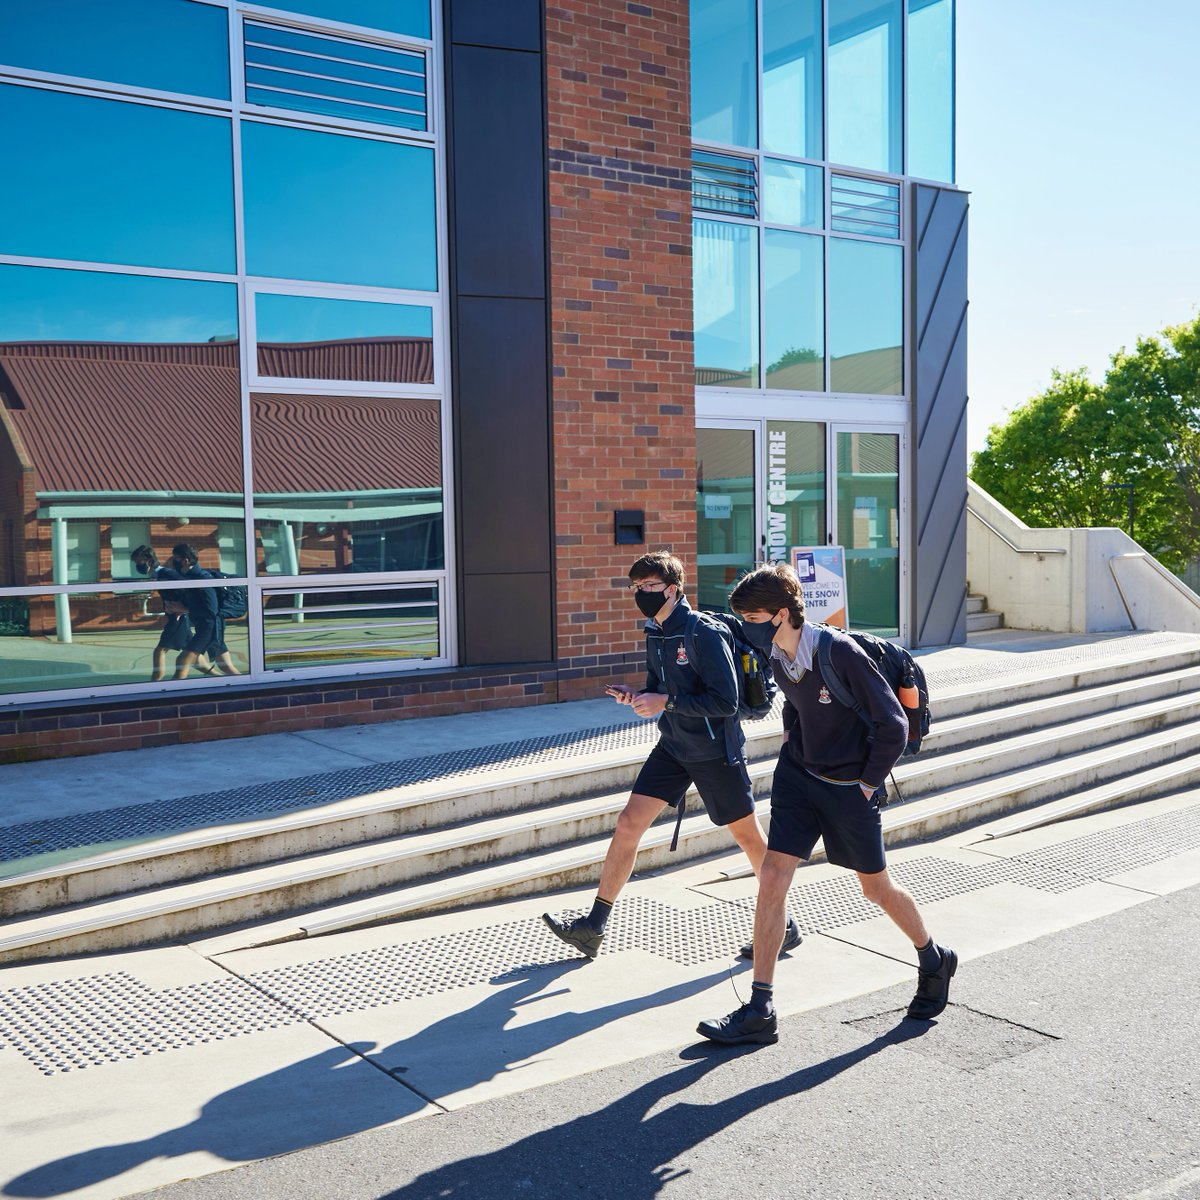 This week we welcomed our Year 11 students back on campus for the rest of Term 4! Good to have you back!